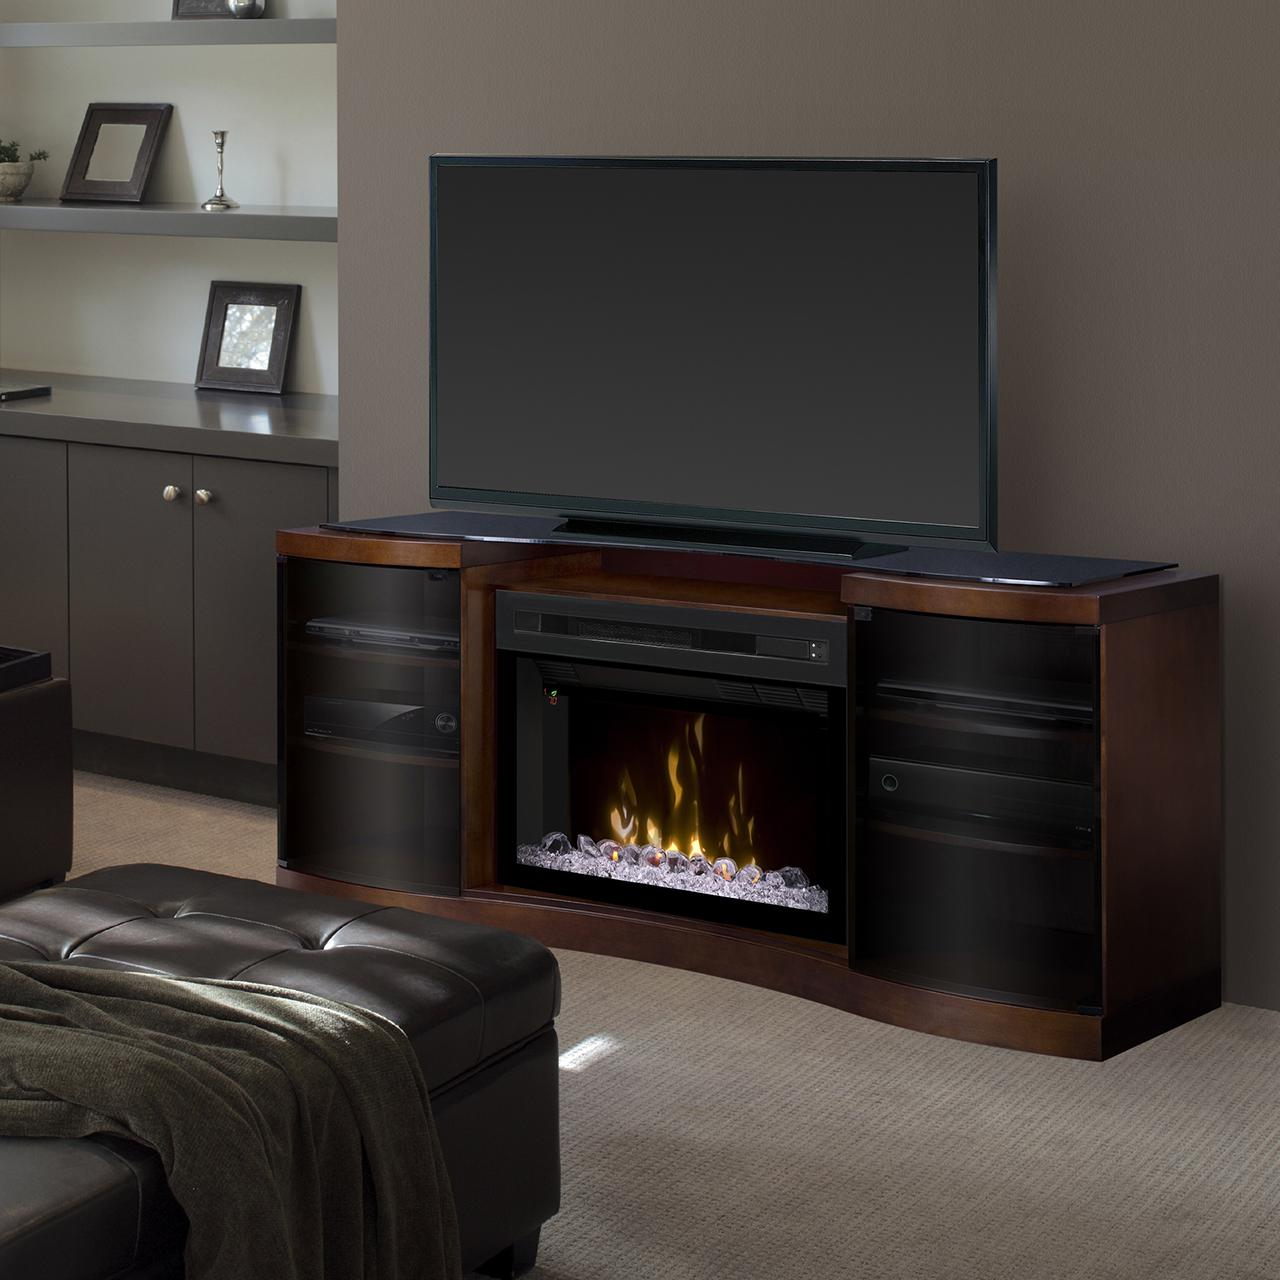 Dimplex Multi-Fire XD Acton 72-Inch Electric Fireplace Me...